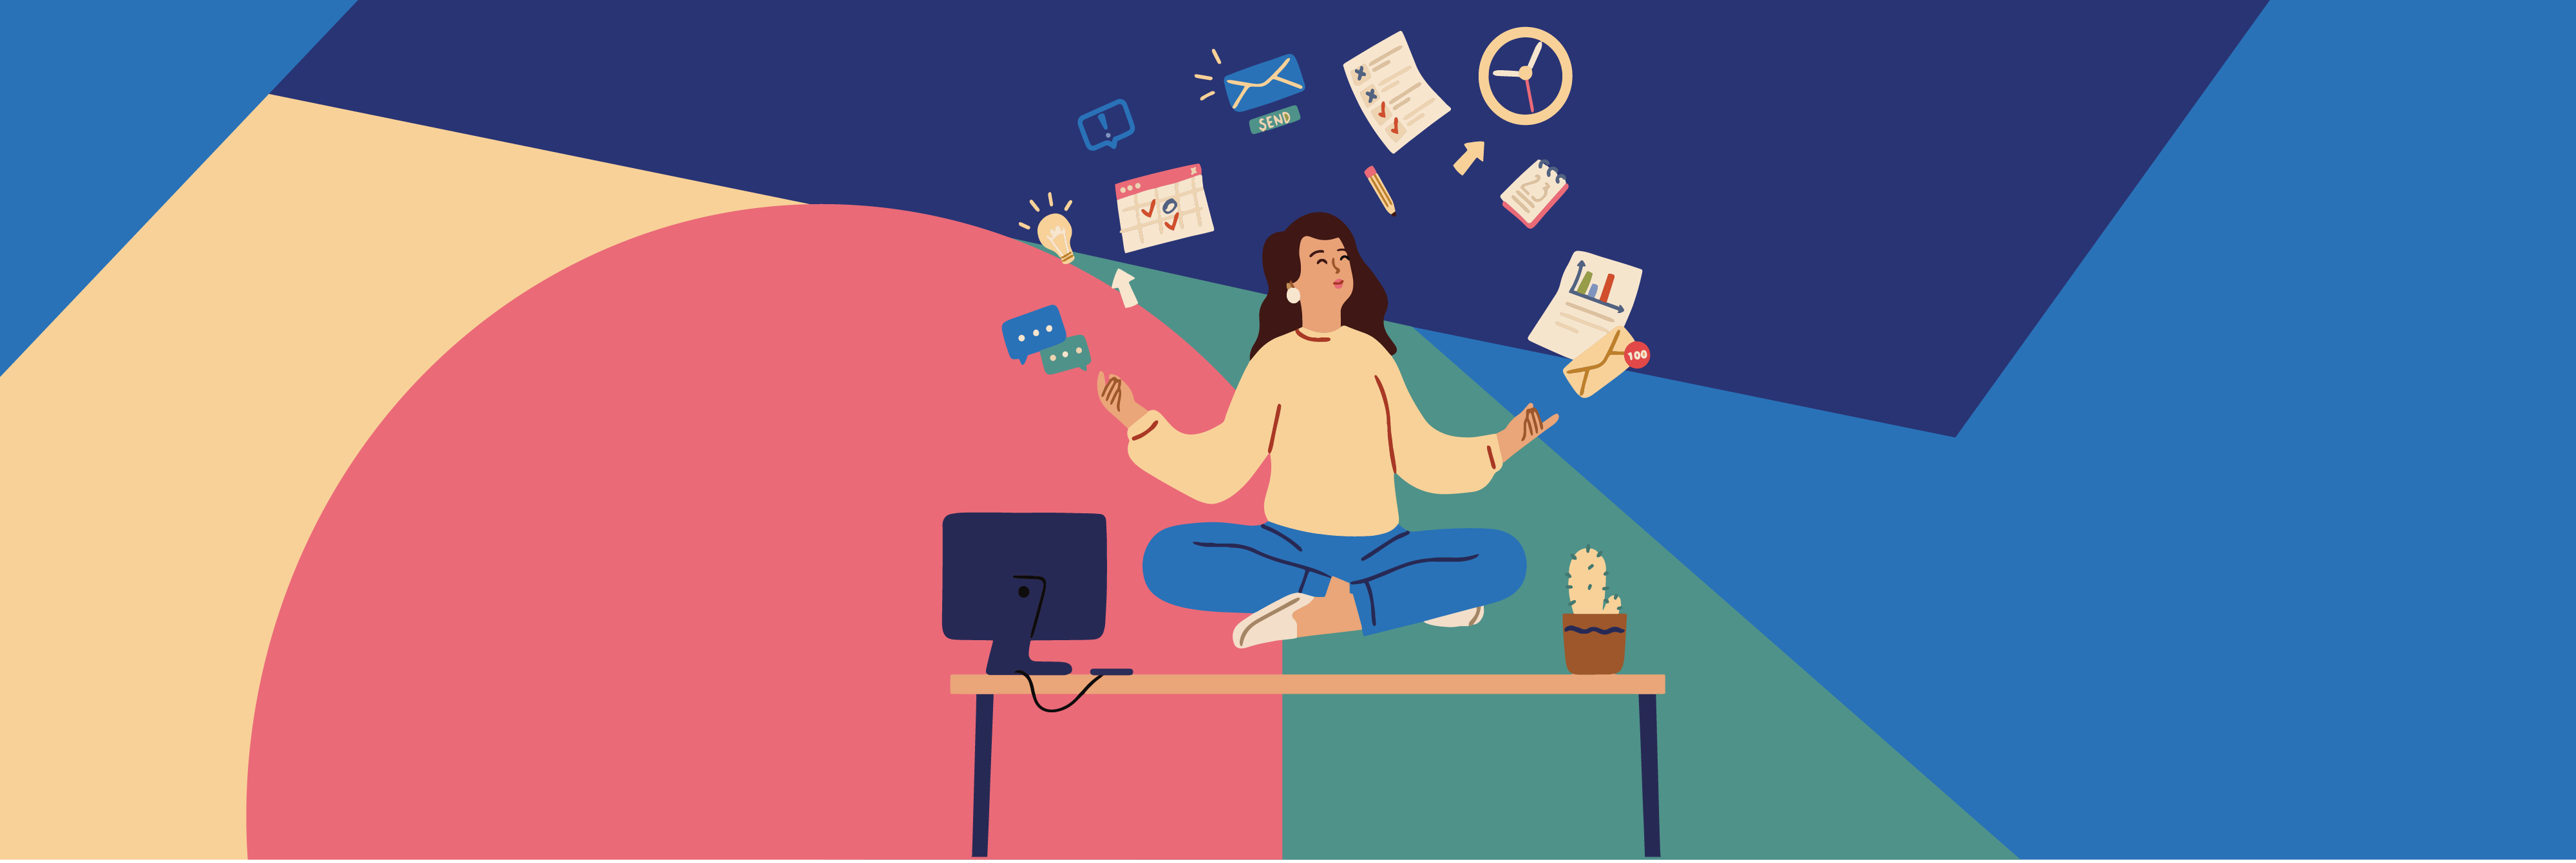 Cartoon of woman meditating while juggling work and life activities